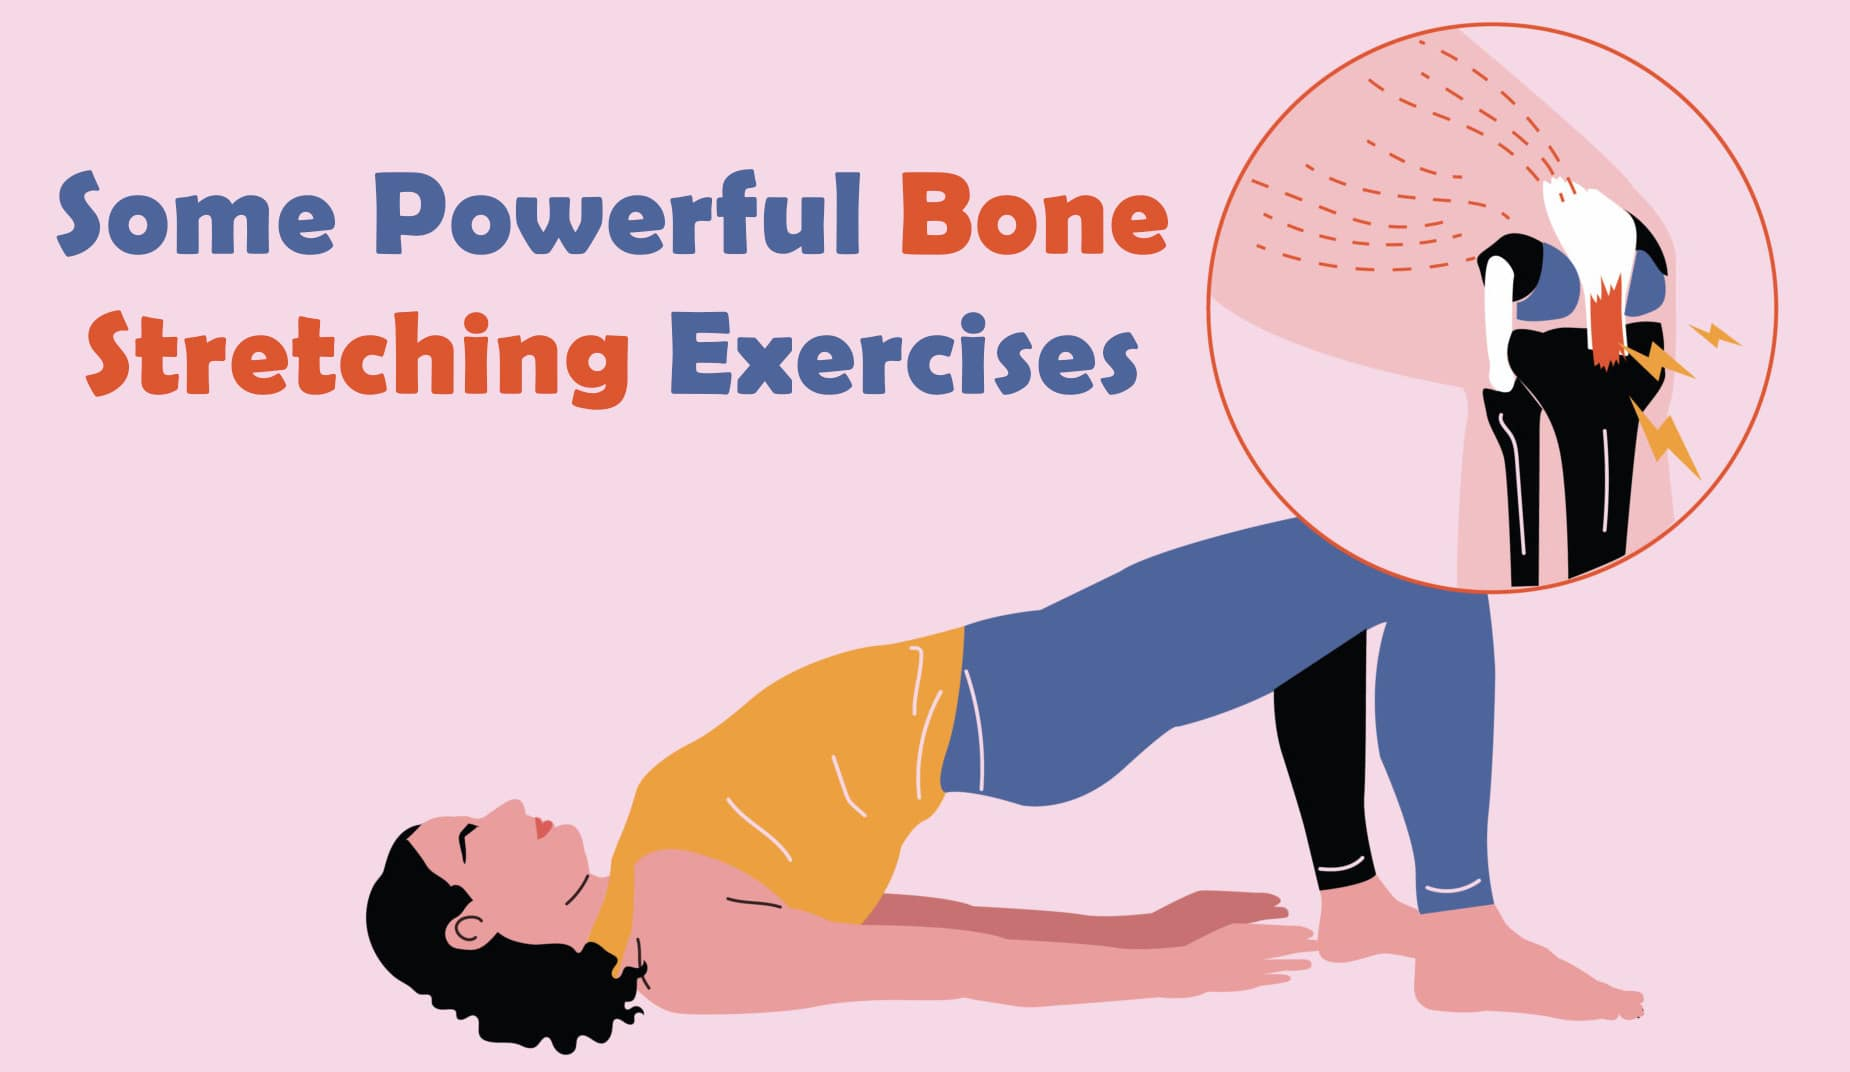 Some Powerful Bone Stretching Exercises, Genmedicare